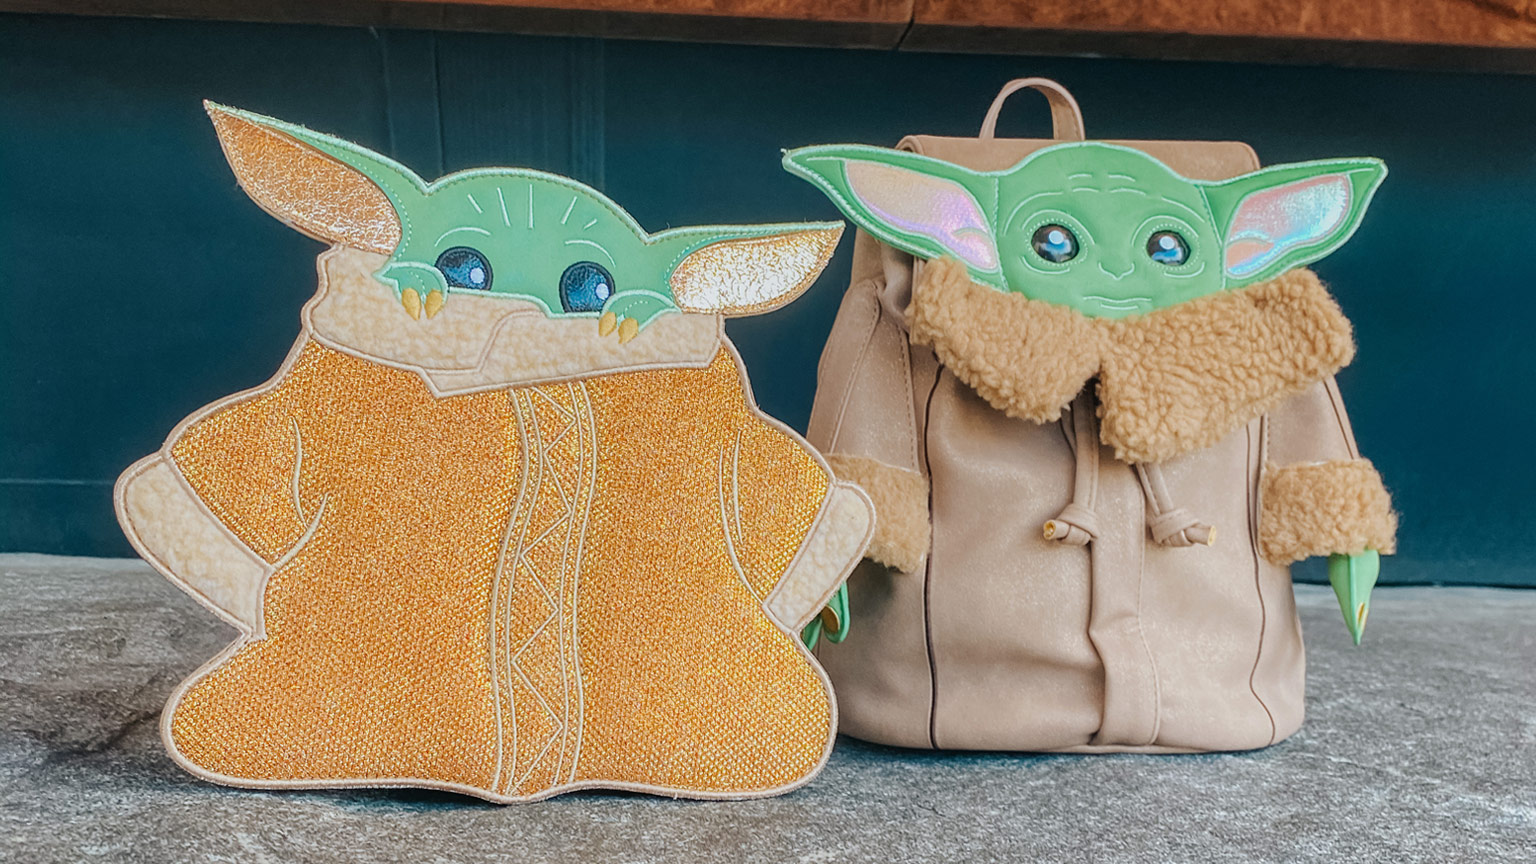 Danielle Nicole x Star Wars the Child backpack and crossbody bags